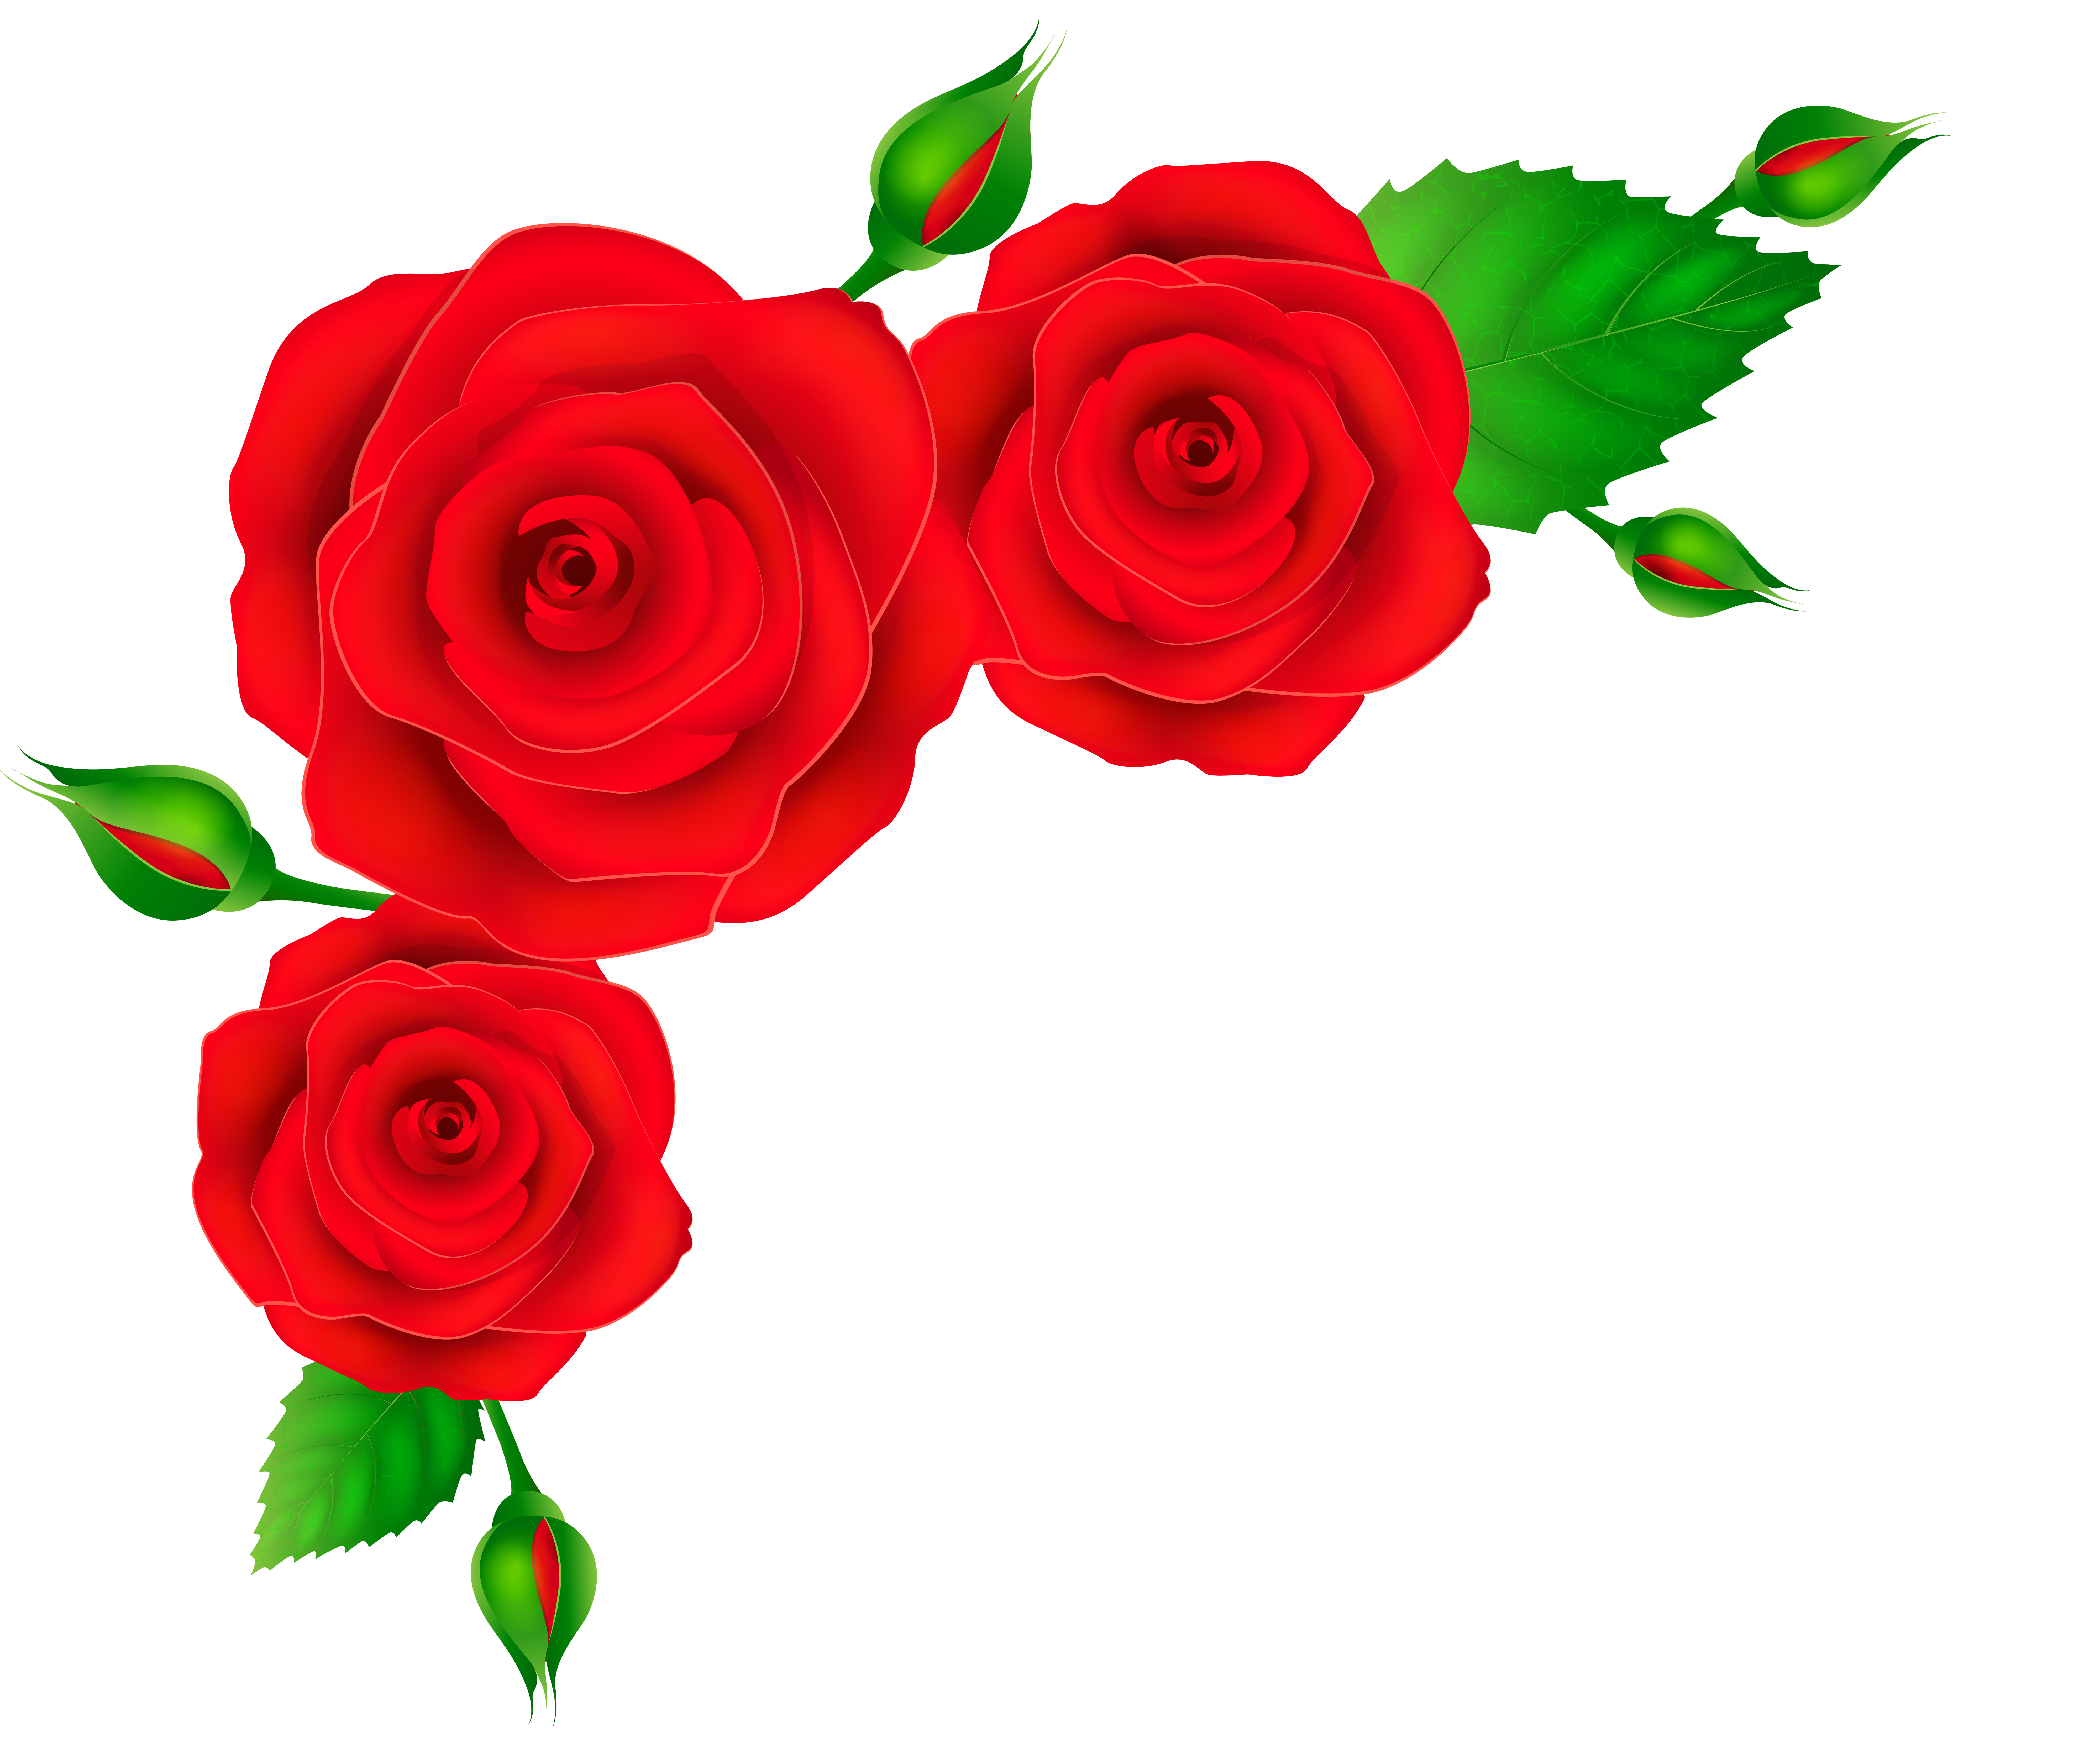 red rose clipart at getdrawings com free for personal use red rose rh getdrawings com red roses clipart borders red roses clipart free